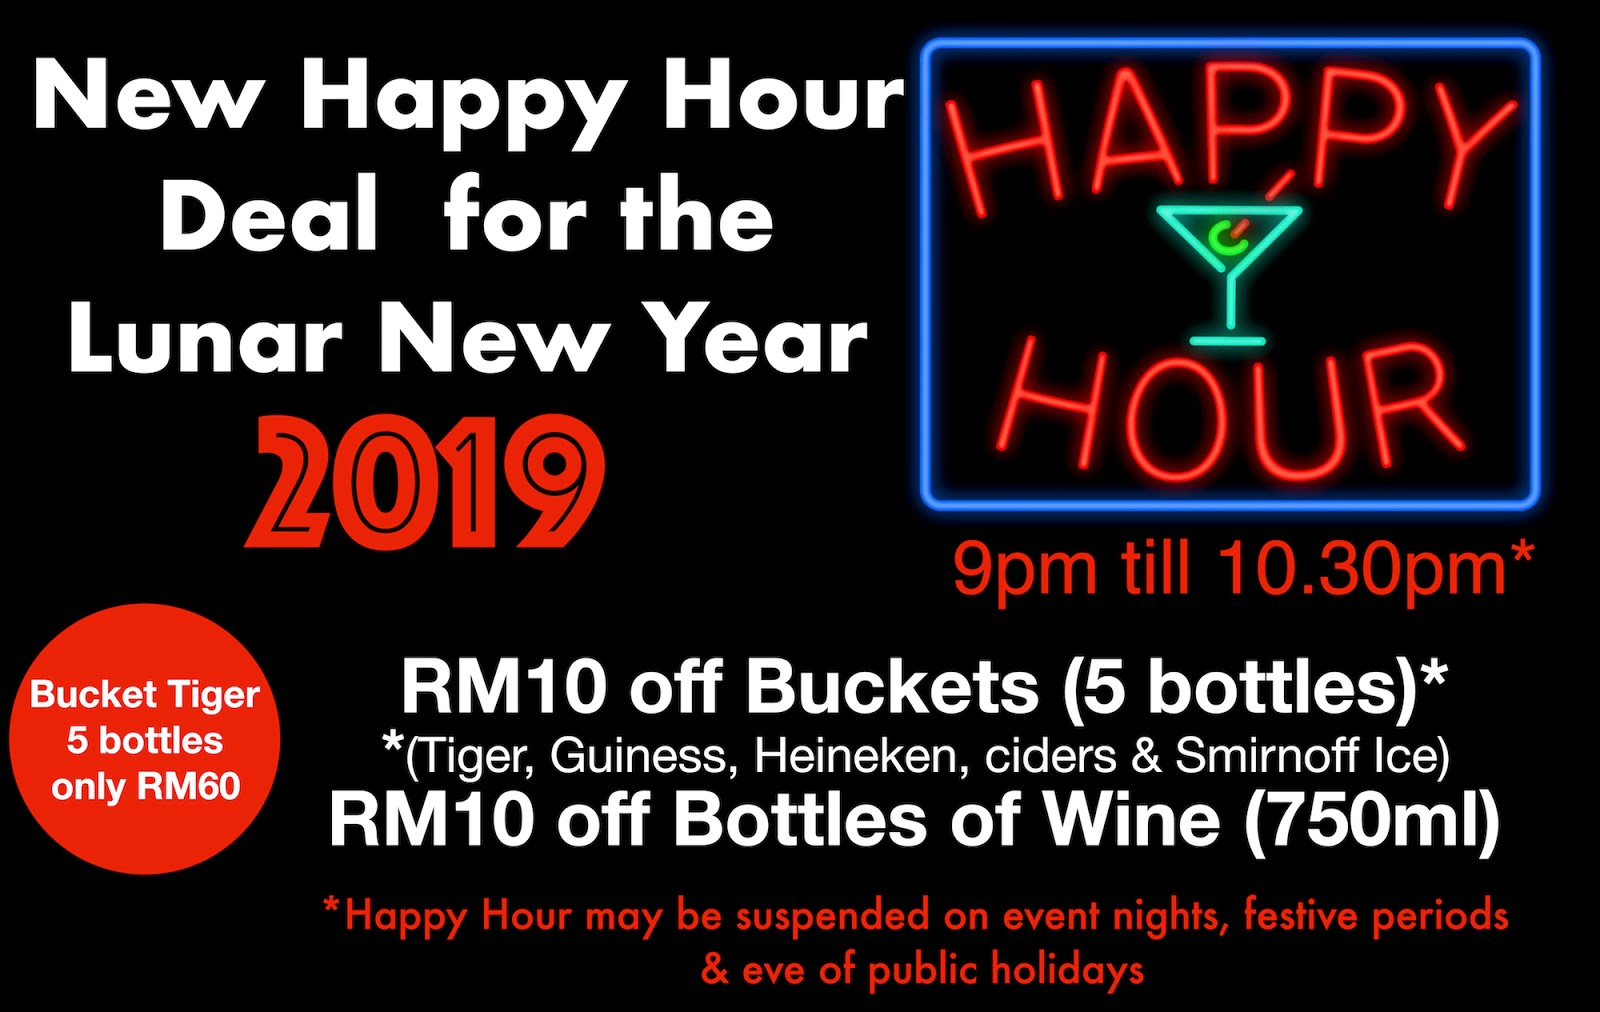 New Lunar Year - New Happy Hour Deal